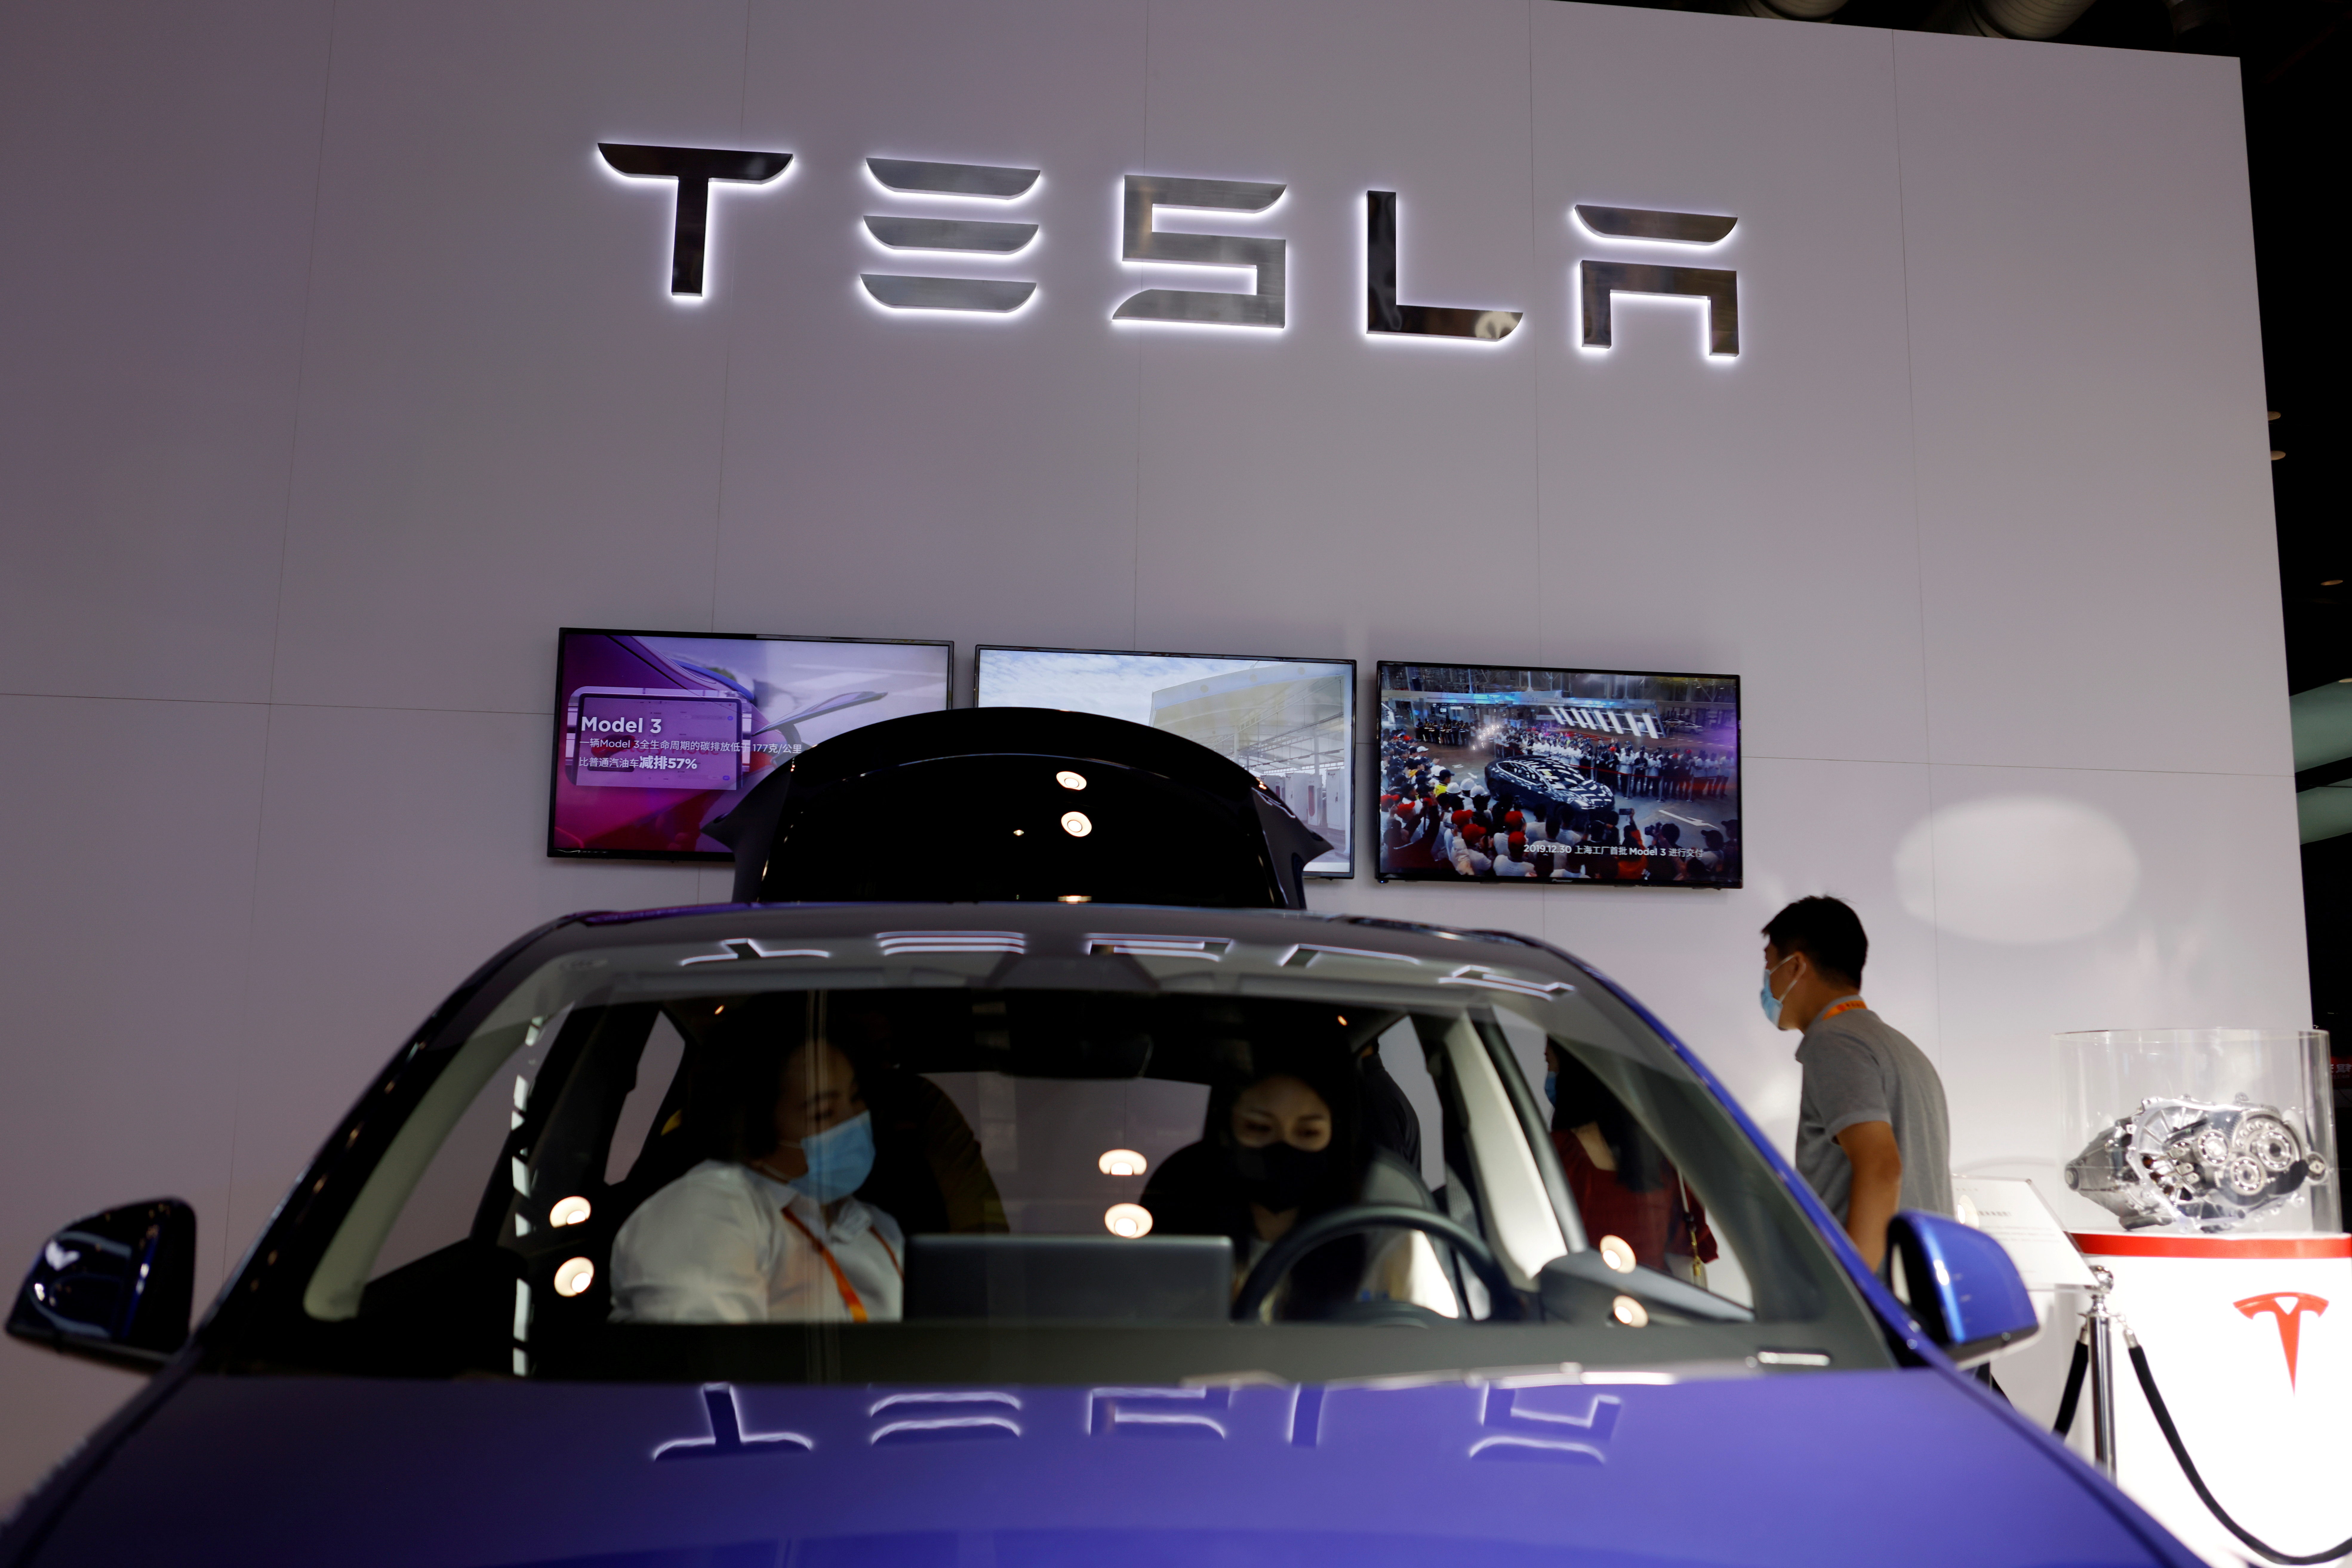 People check a Tesla Model Y electric vehicle (EV) displayed at its booth during the 2021 China International Fair for Trade in Services (CIFTIS) in Beijing, China September 4, 2021.